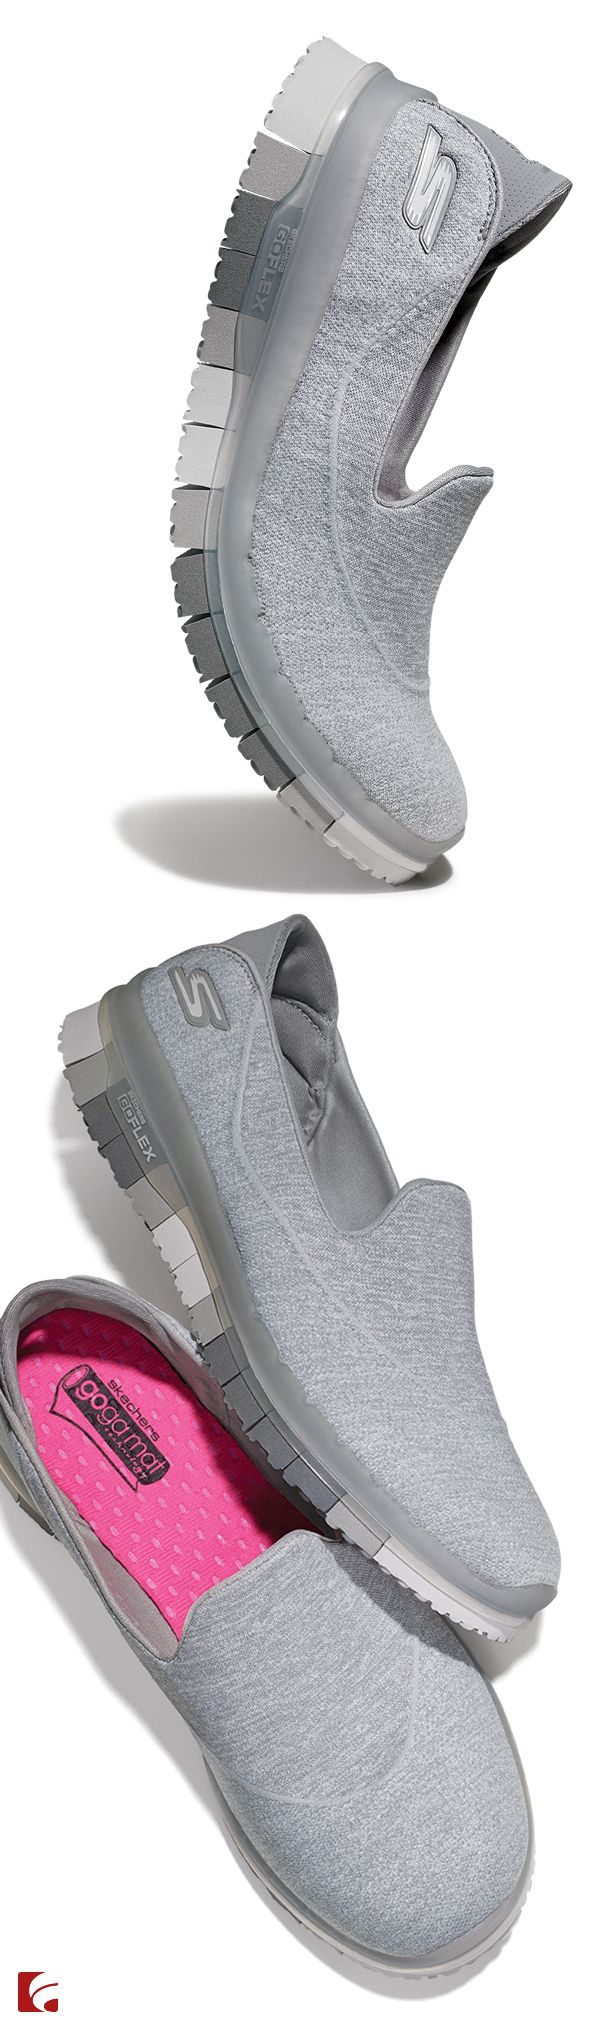 Your new go-to shoe to conquer it all. The Skechers GO FLEX sneaker is flexible and comfortable to support you during whatever life brings you. Grab your to-do list and pair with your favorite comfy-cute outfit and you're out the door!